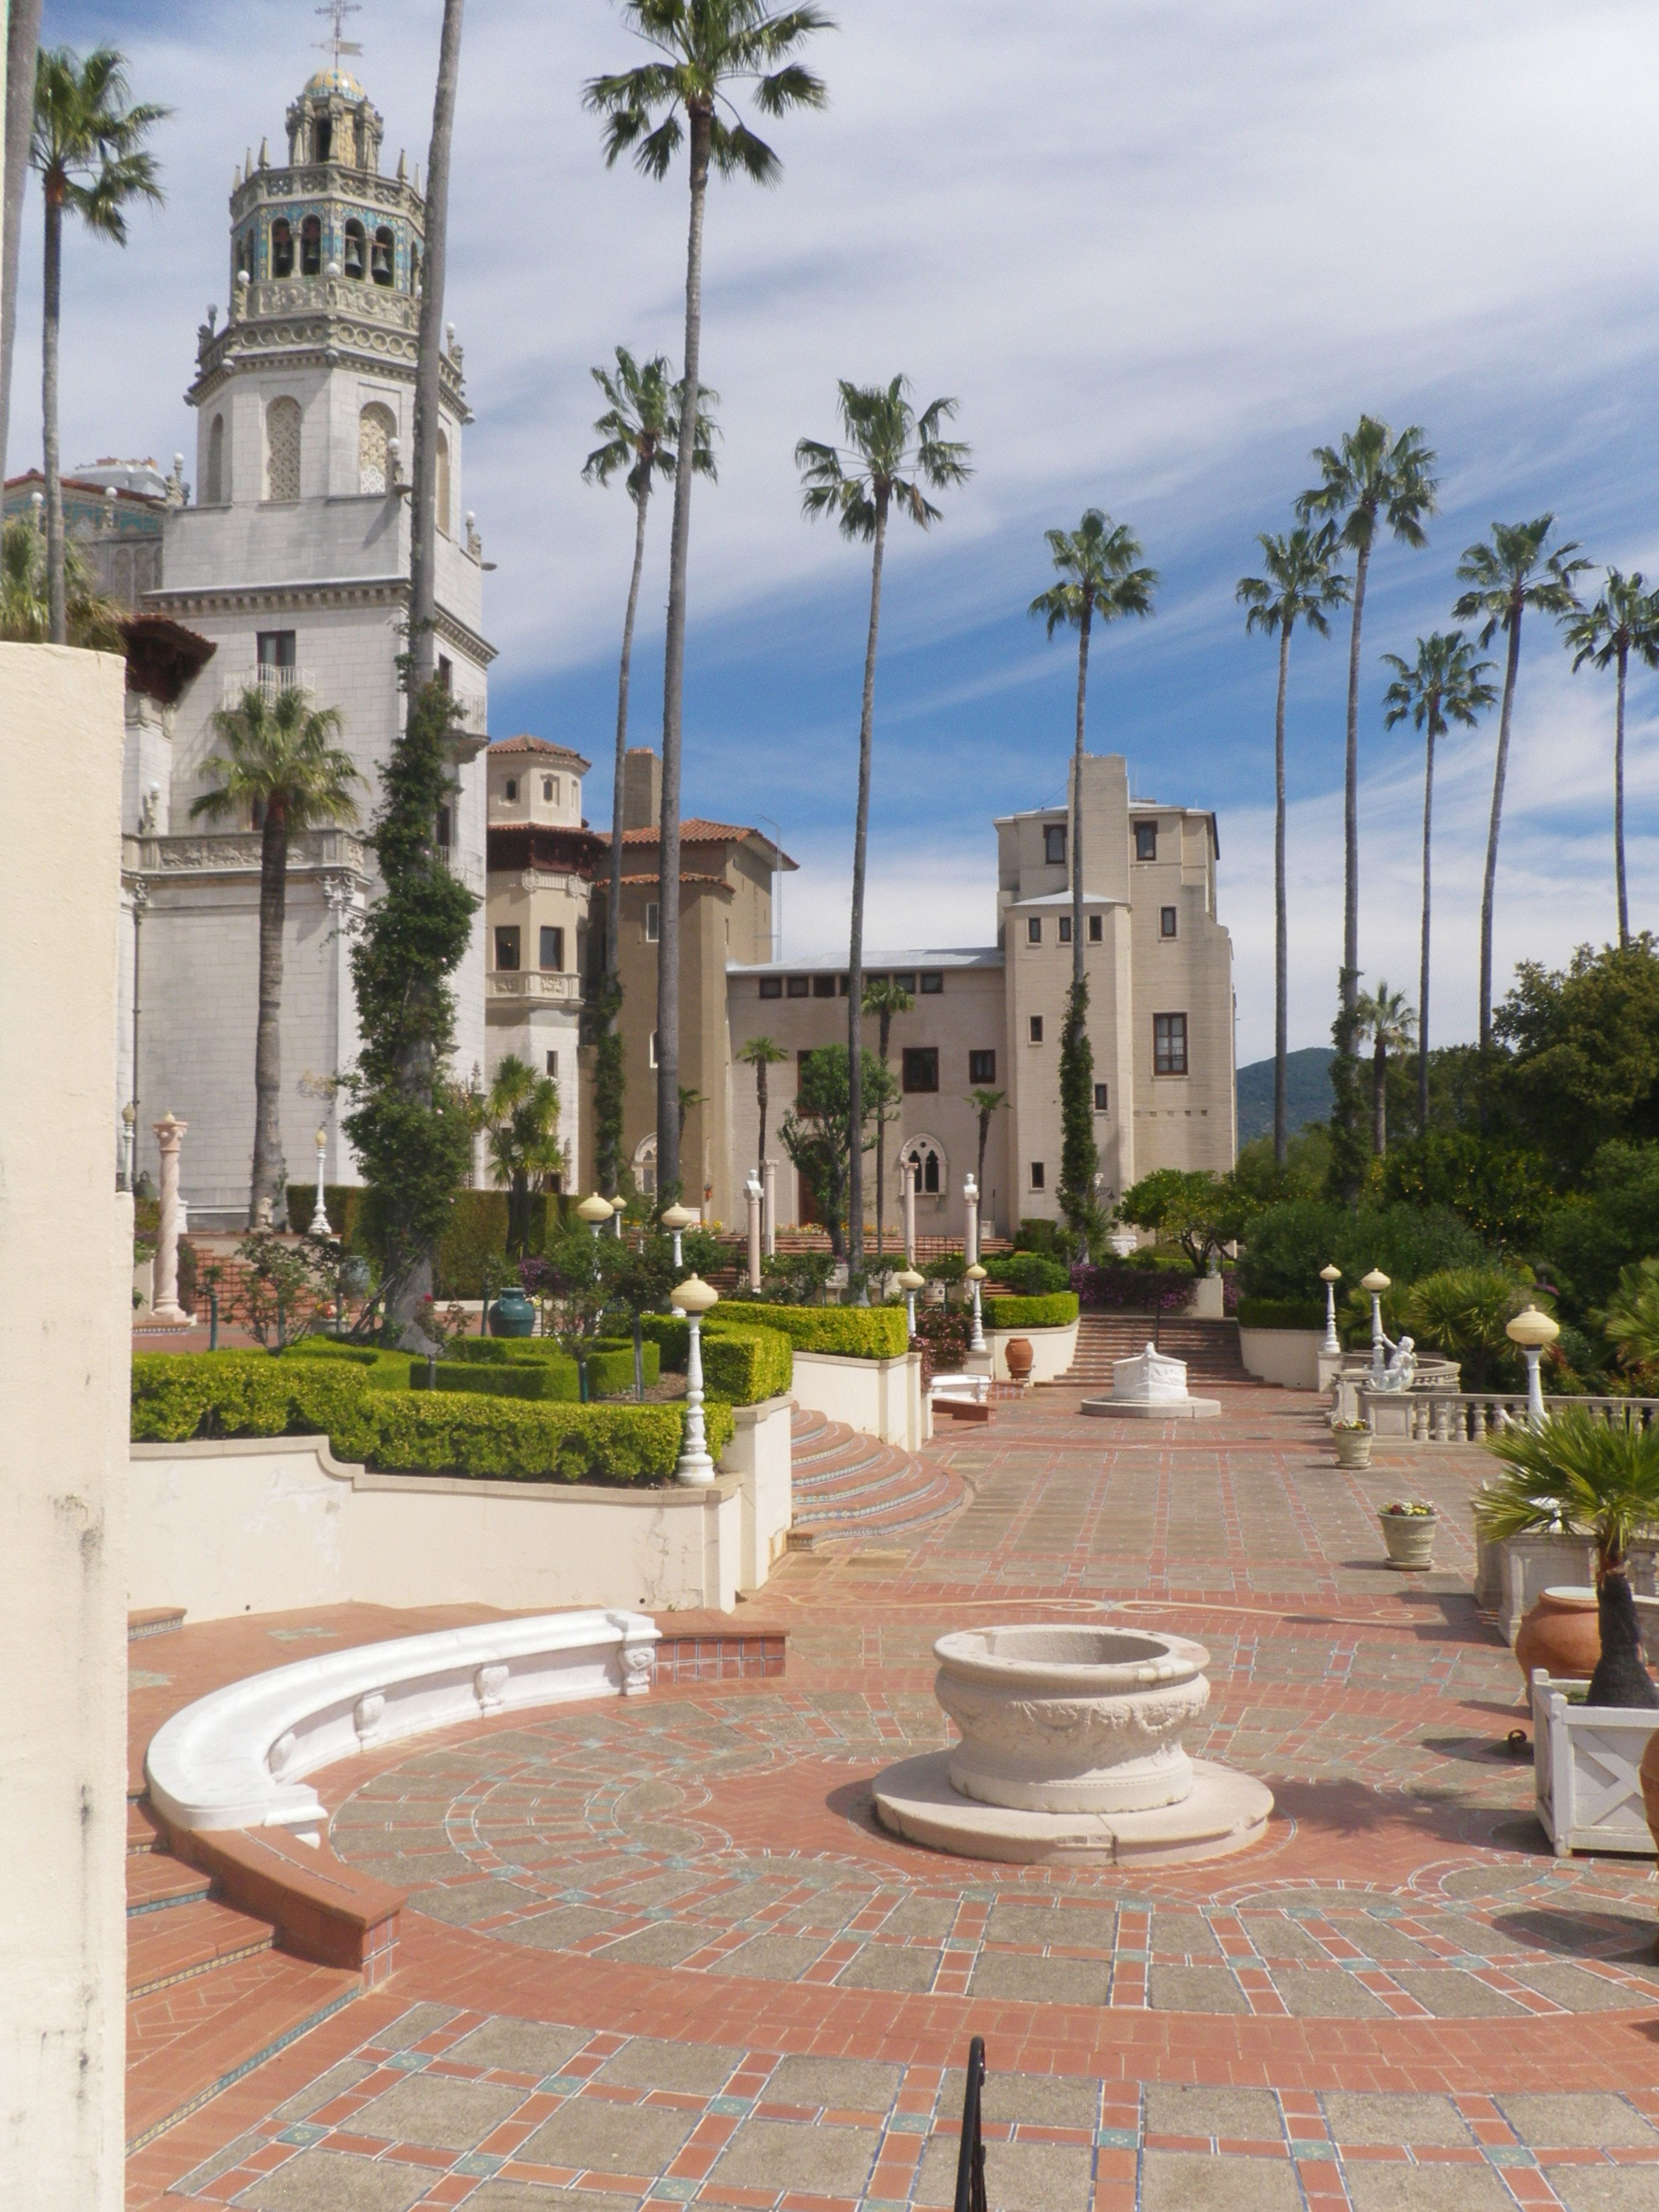 Medley Of Maddie Places To Go California Travel Hearst Castle